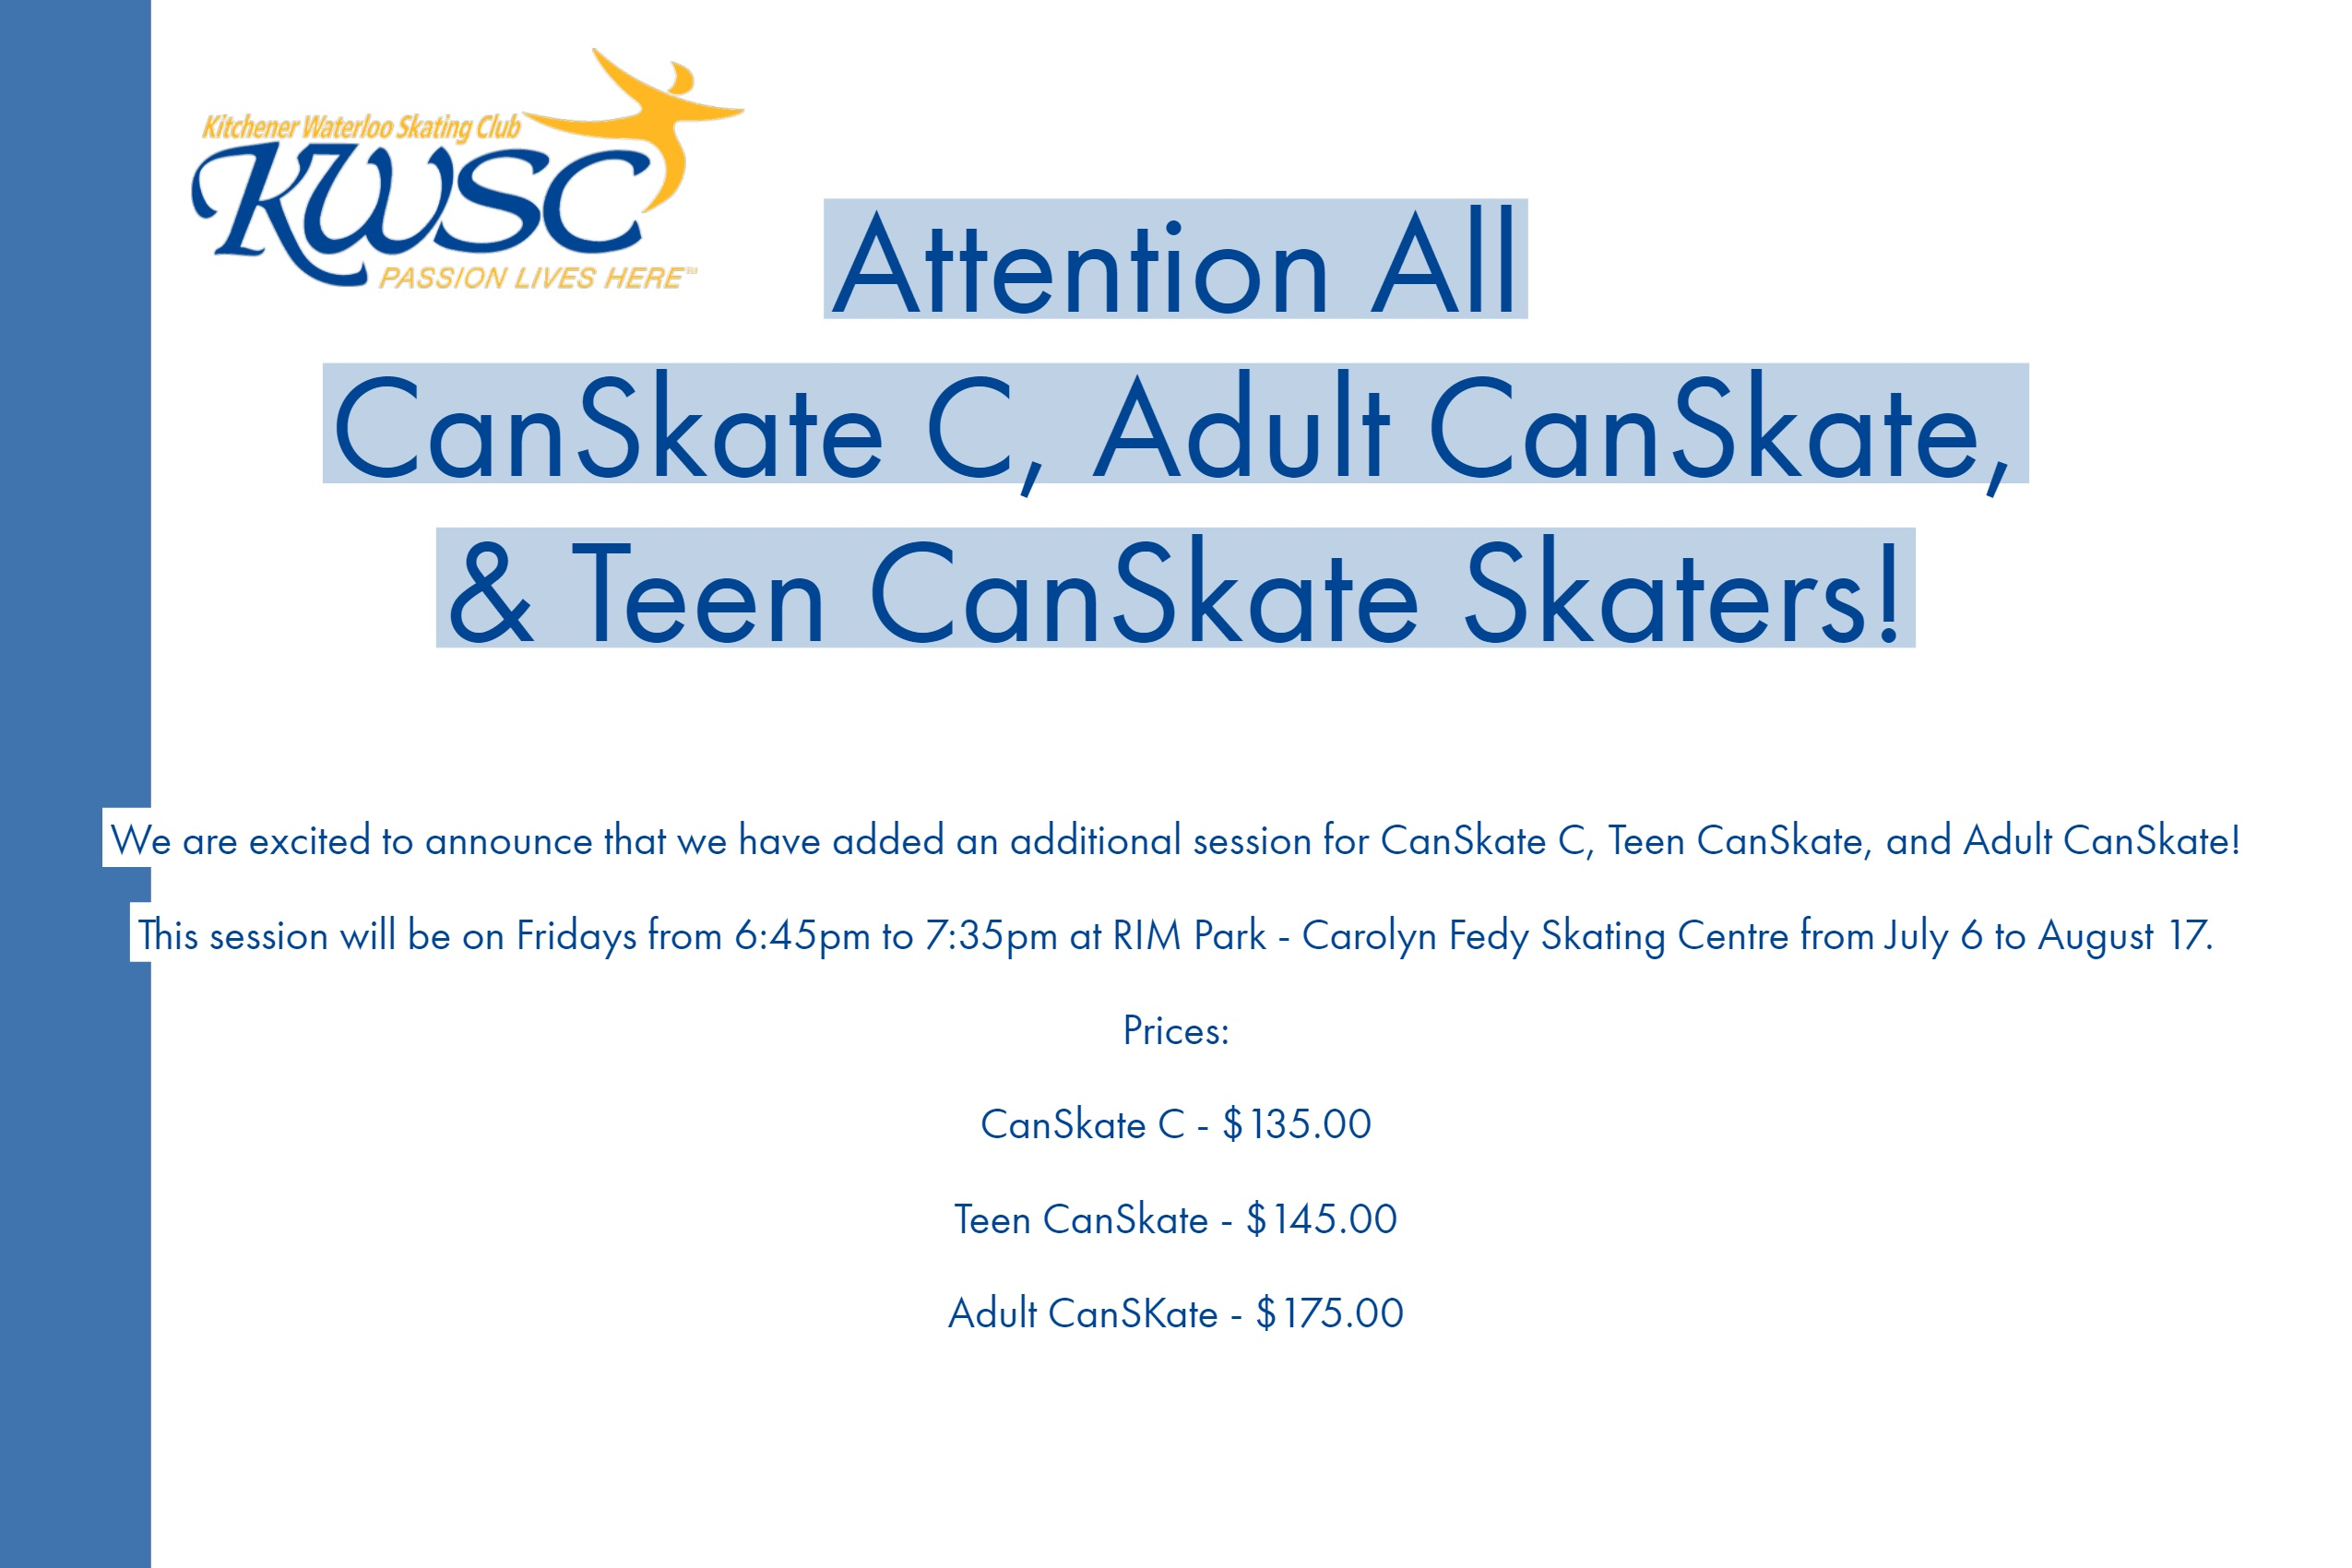 Additional CanSkate Session Added in Summer 2018